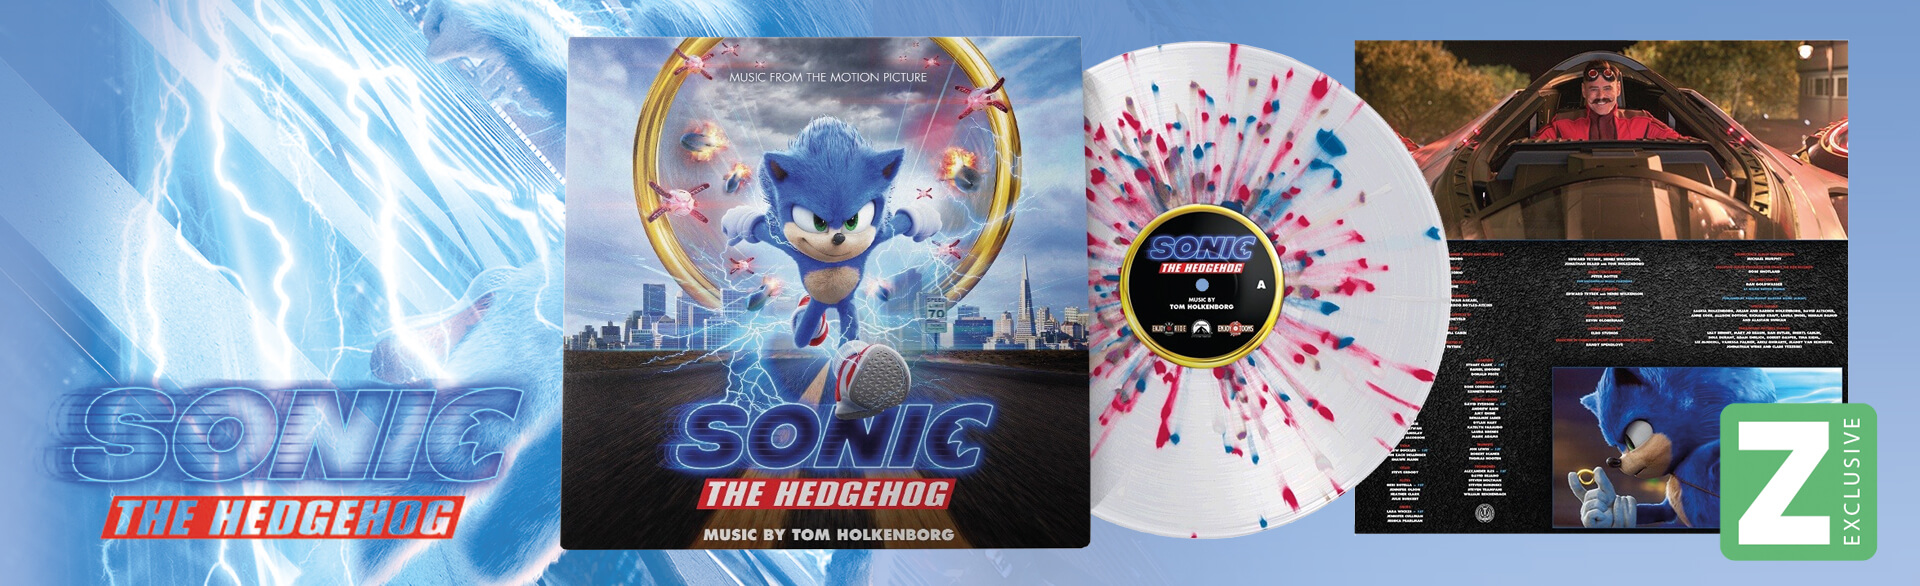 SONIC THE HEDGEHOG VINYL